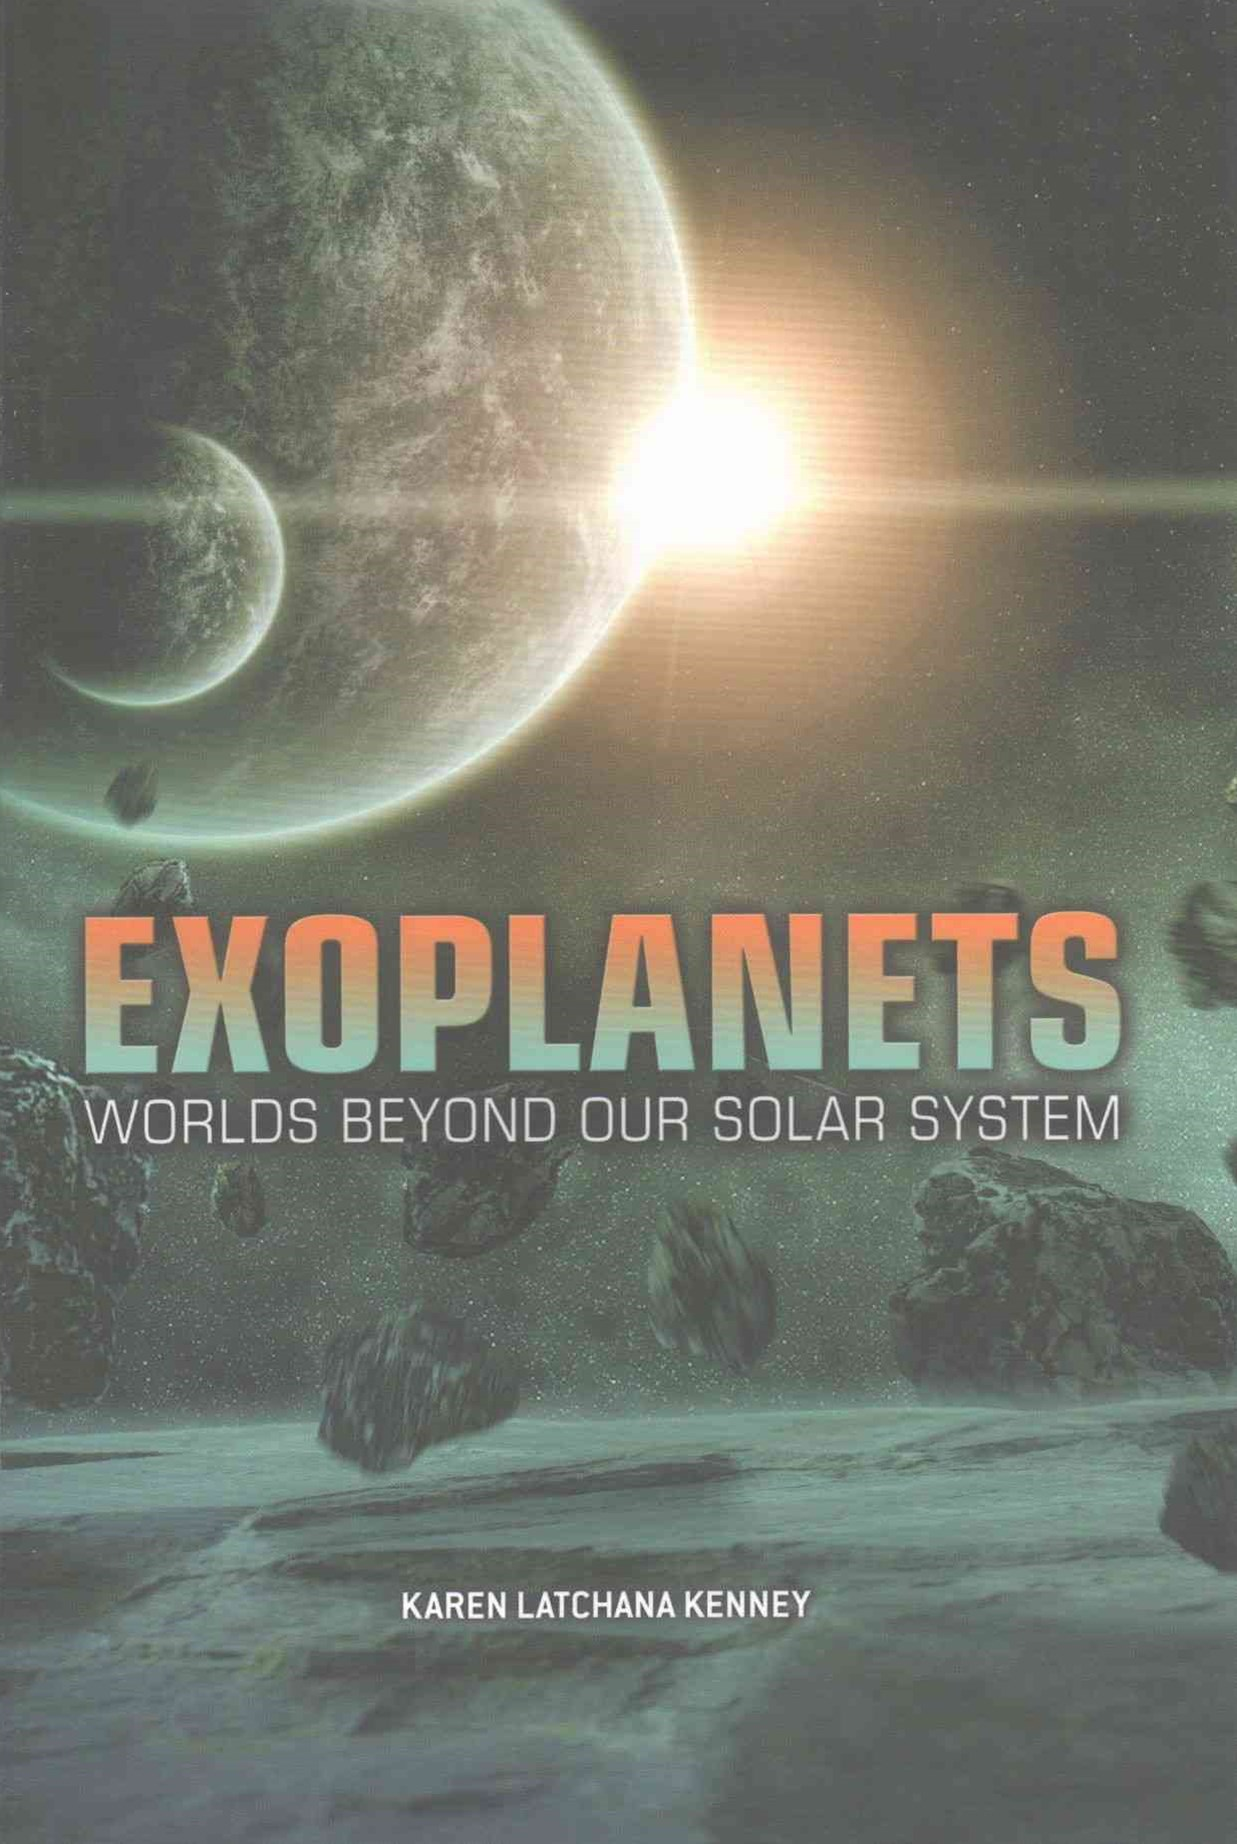 Exoplanets - Worlds Beyond Our Solar System